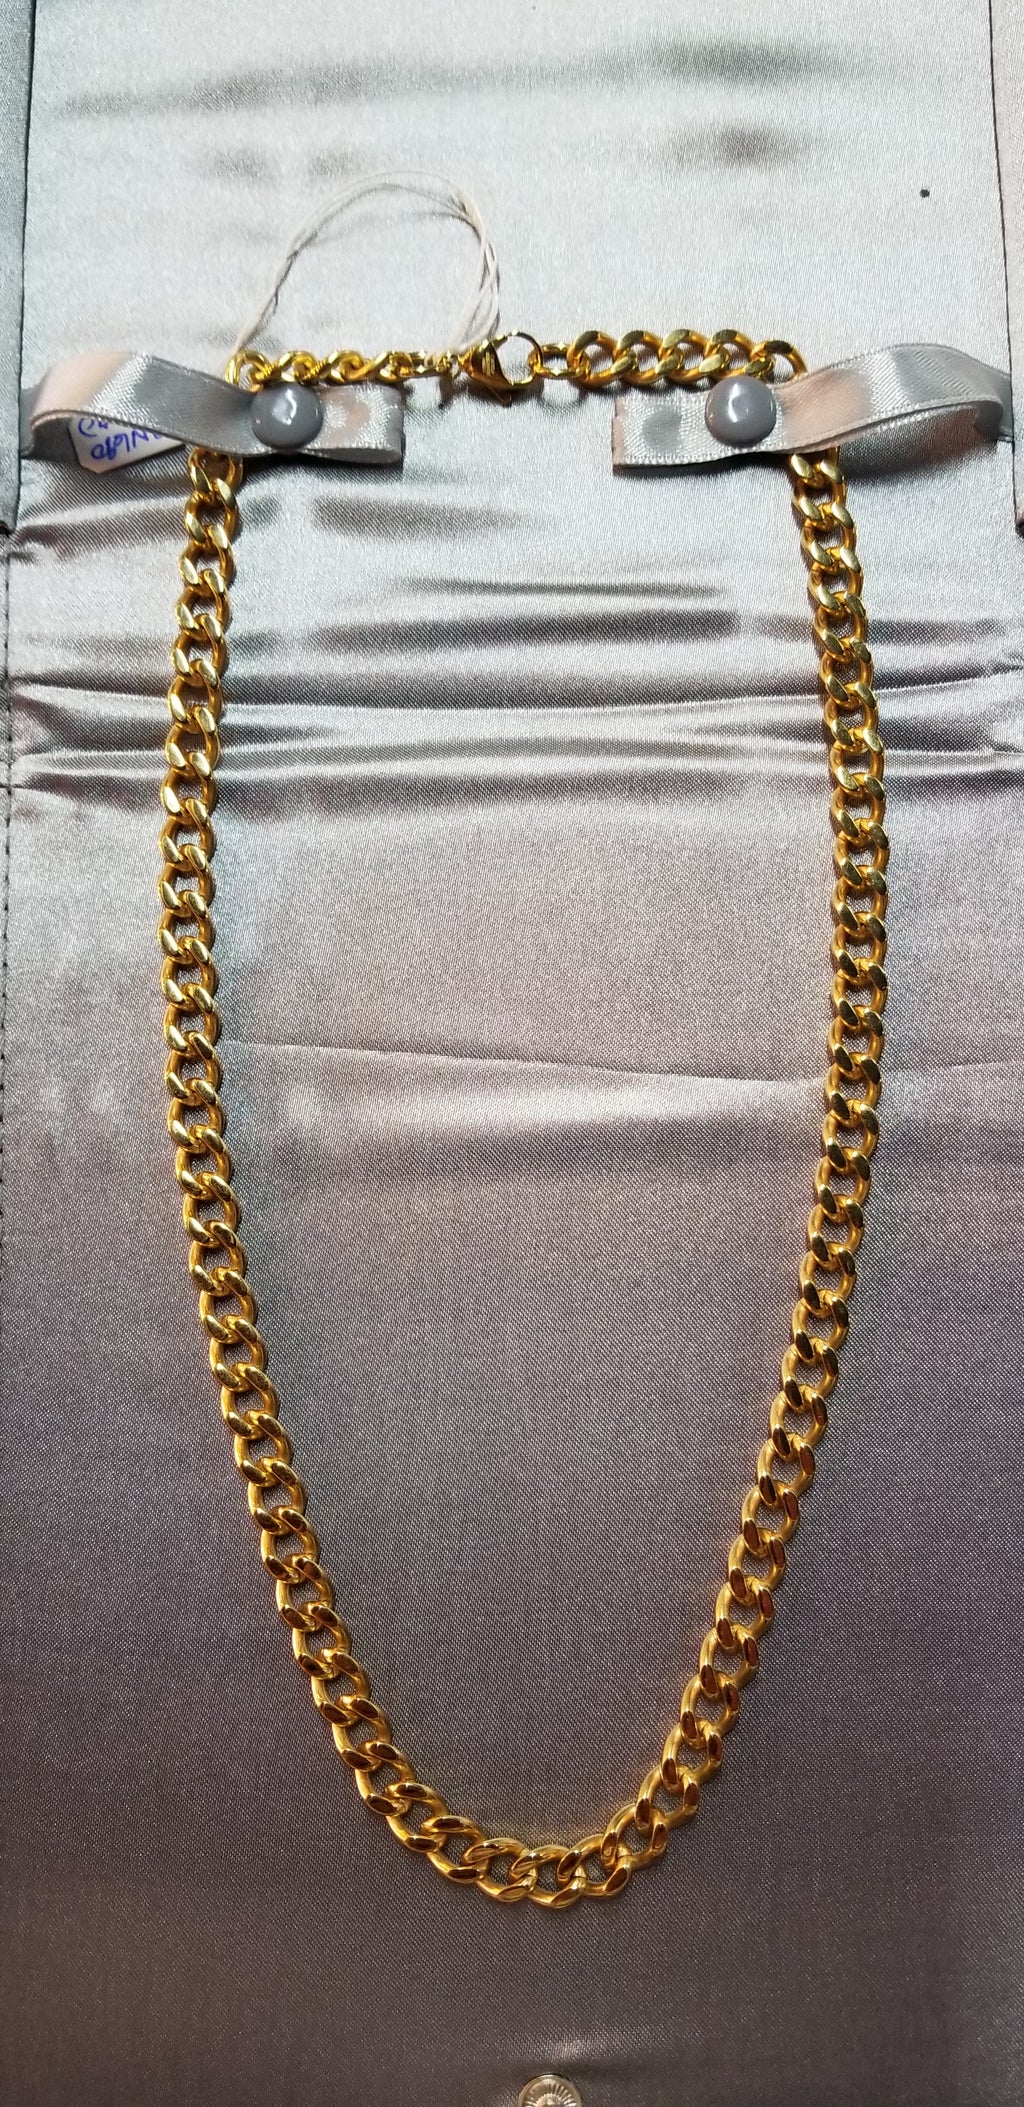 Stainless Steel IP Gold-Plated 7.5mm 20in Curb Chain